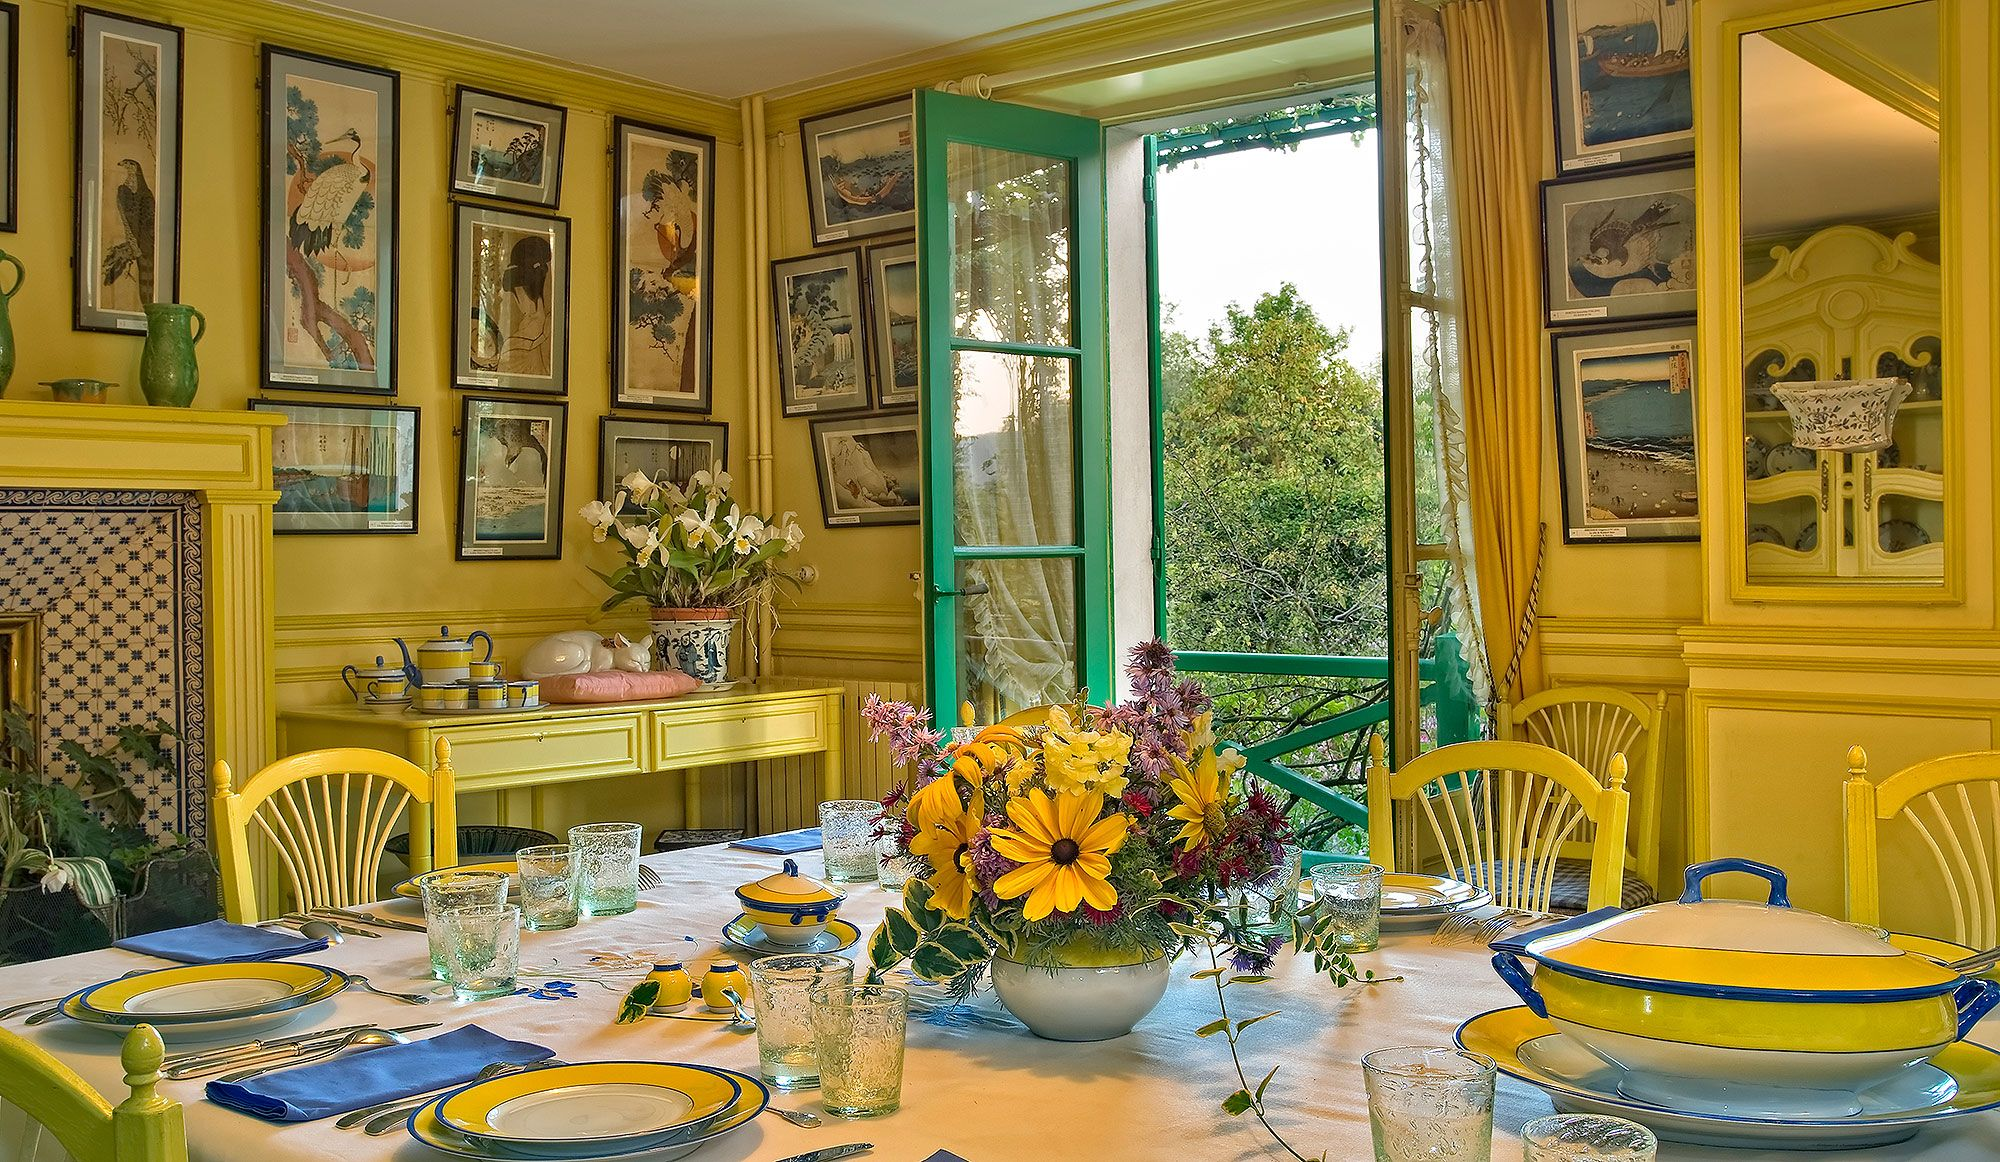 Photograph Of Monetu0027s Dining Room At Ginevry, After Recent Restoration.    Artists Life   Claude Monet   Pinterest   Monet, Claude Monet And Artist  Life